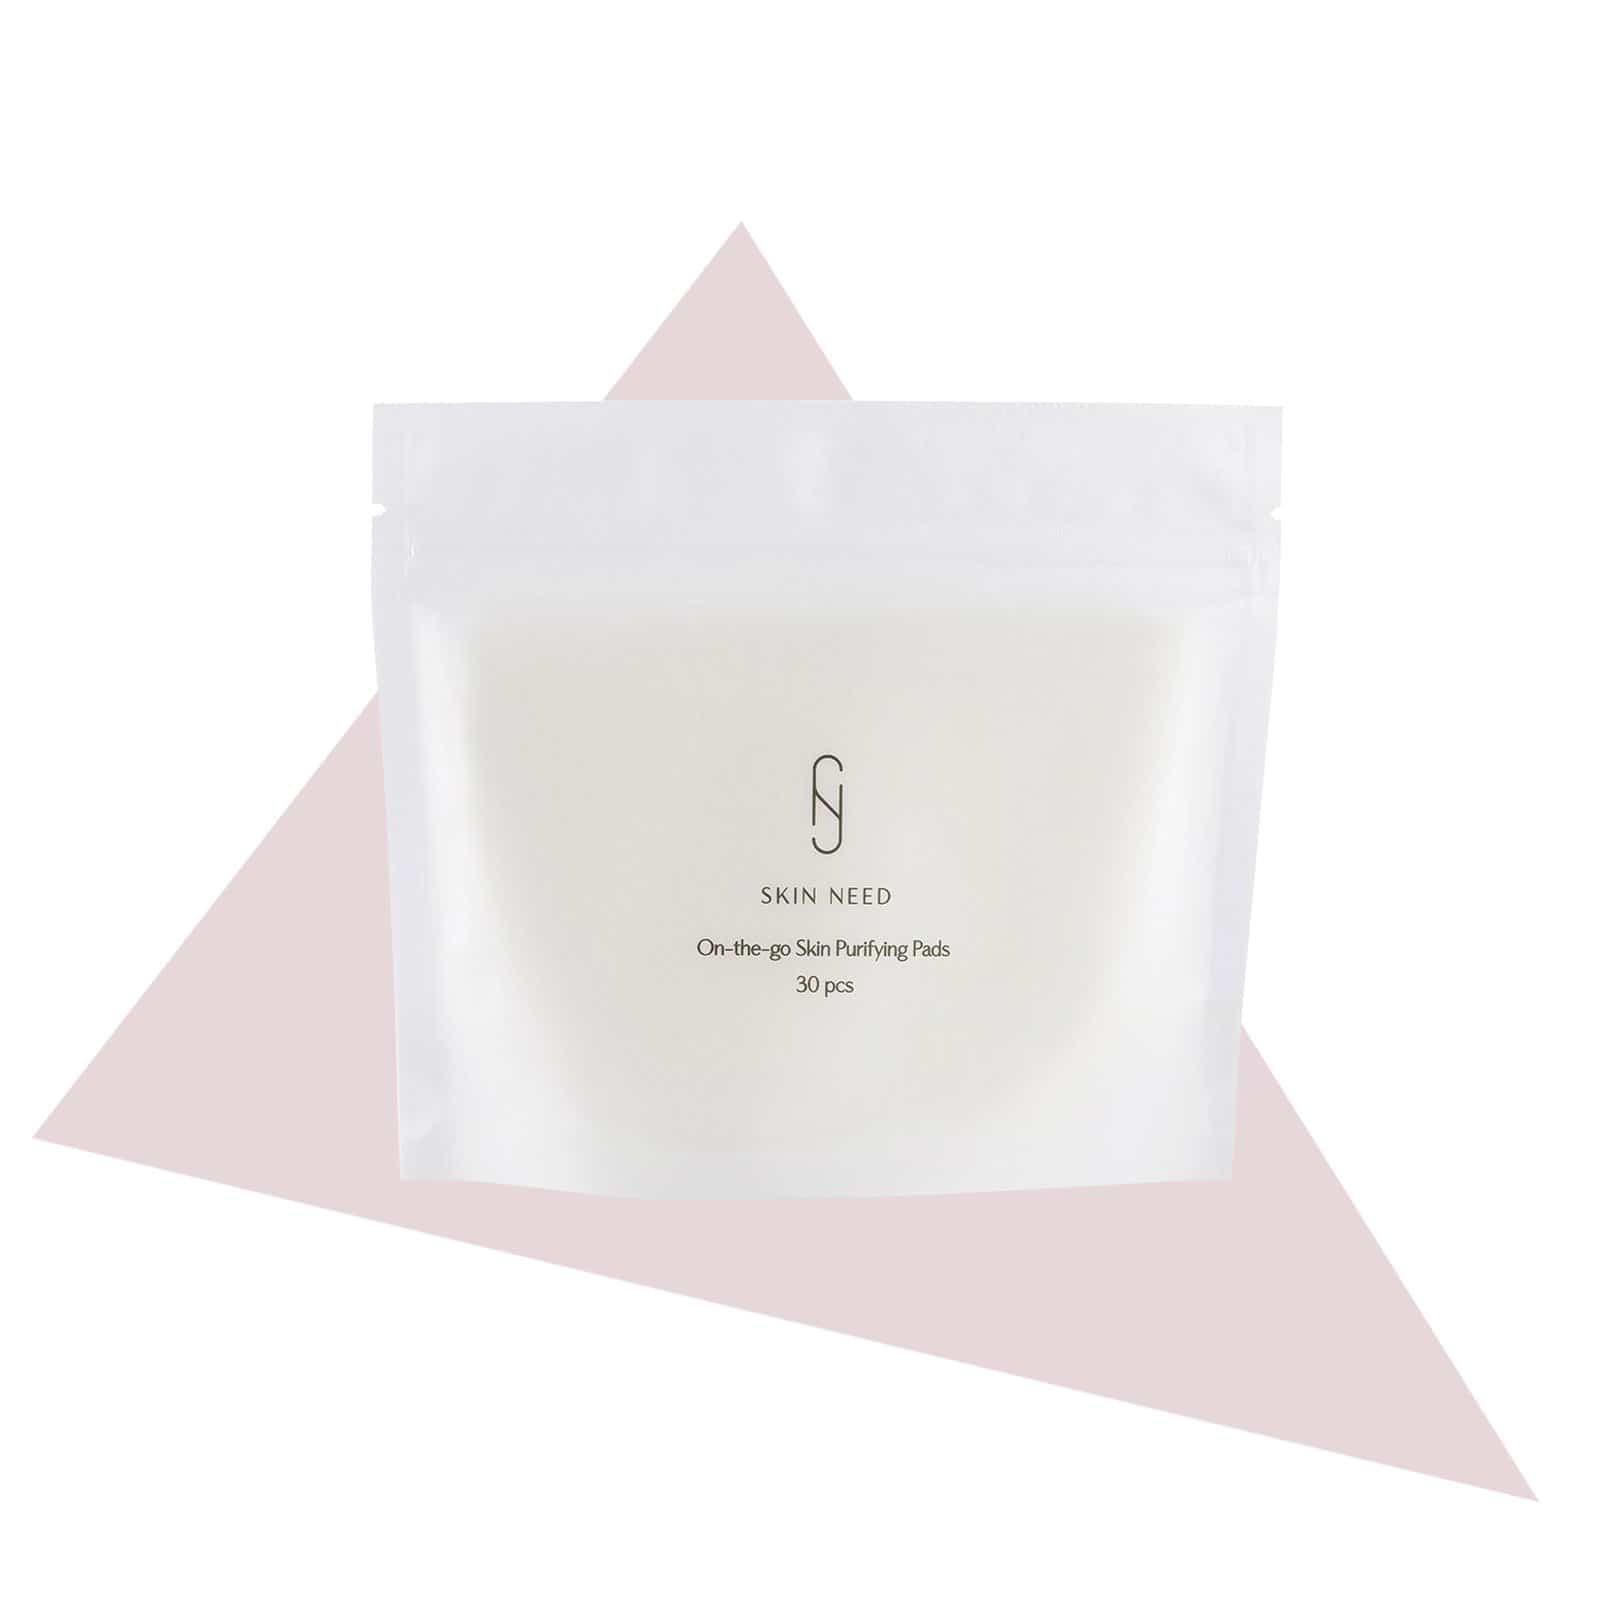 SKIN NEED On-the-go Skin Purifying Pads 30pcs